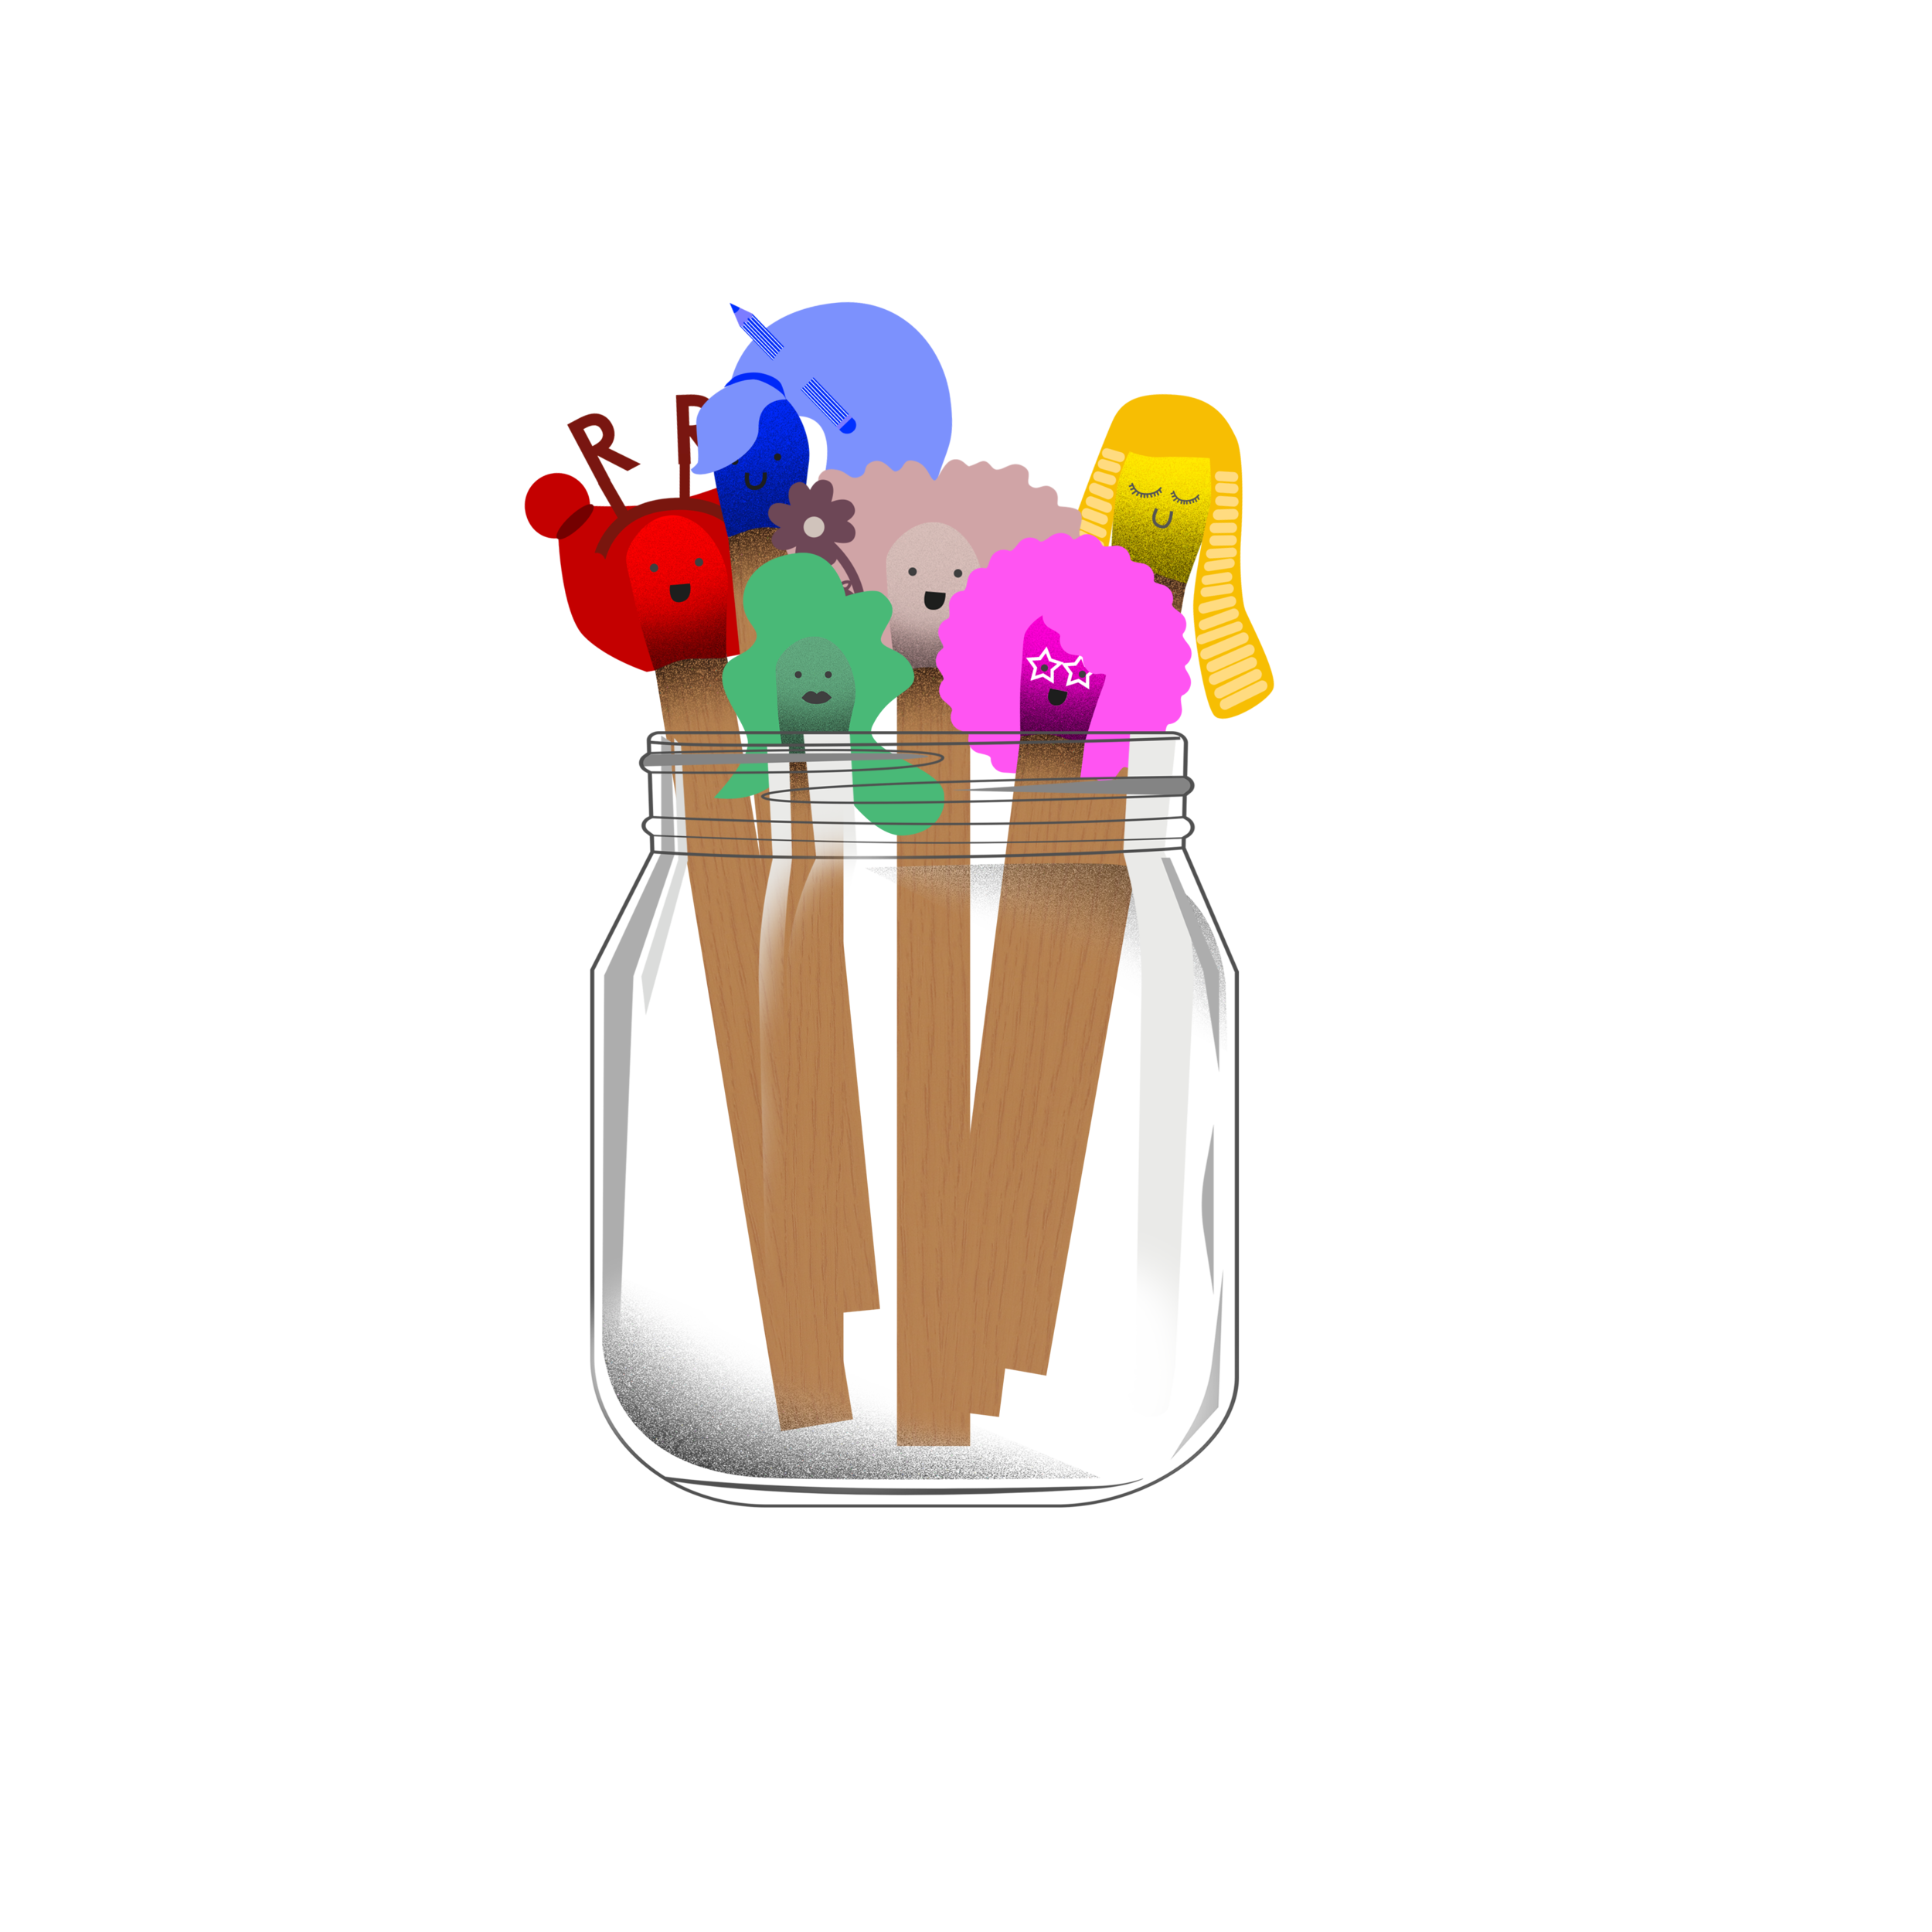 Matchstick+people_and+jar.png